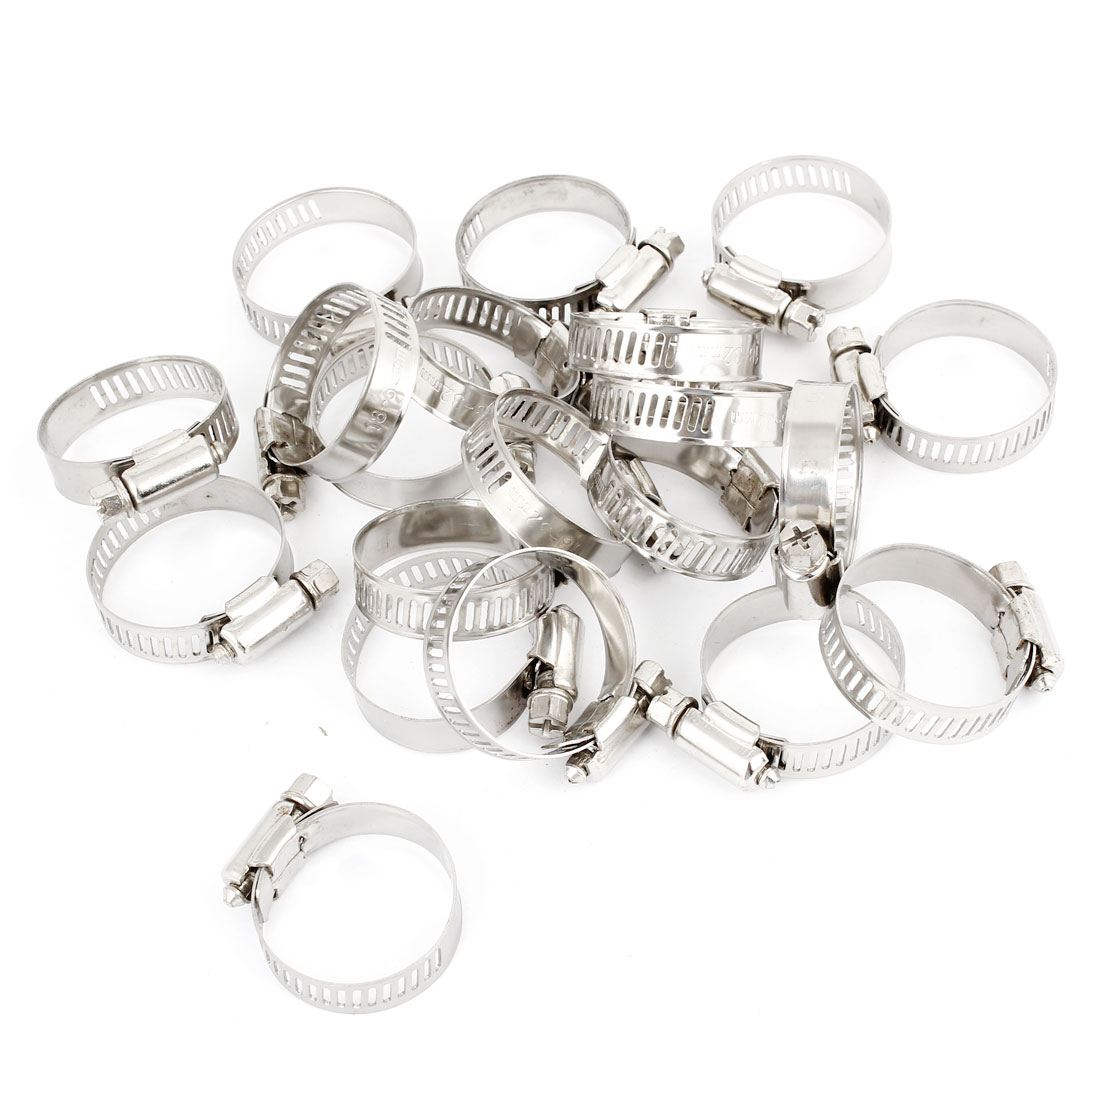 20 Pcs 18mm-32mm Hose Clamp Metal Adjustable Band Cable Tight Click Silver Tone